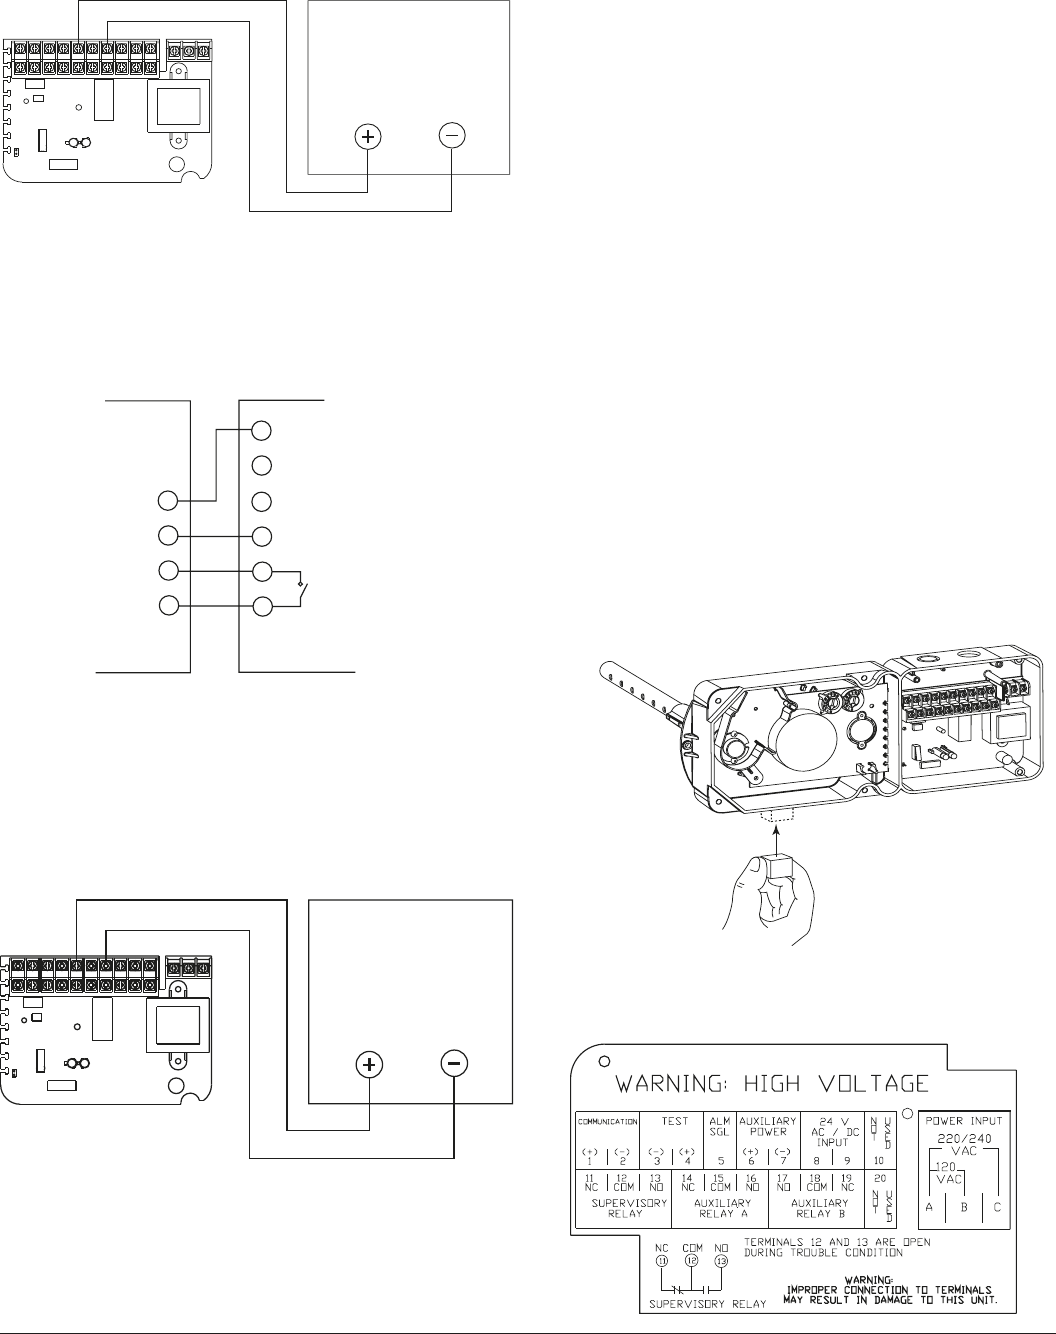 8483b56e 848c 4932 8d73 94b60800f0eb bg6 page 6 of system sensor smoke alarm dh200rpl user guide system sensor 2451 wiring diagram at panicattacktreatment.co